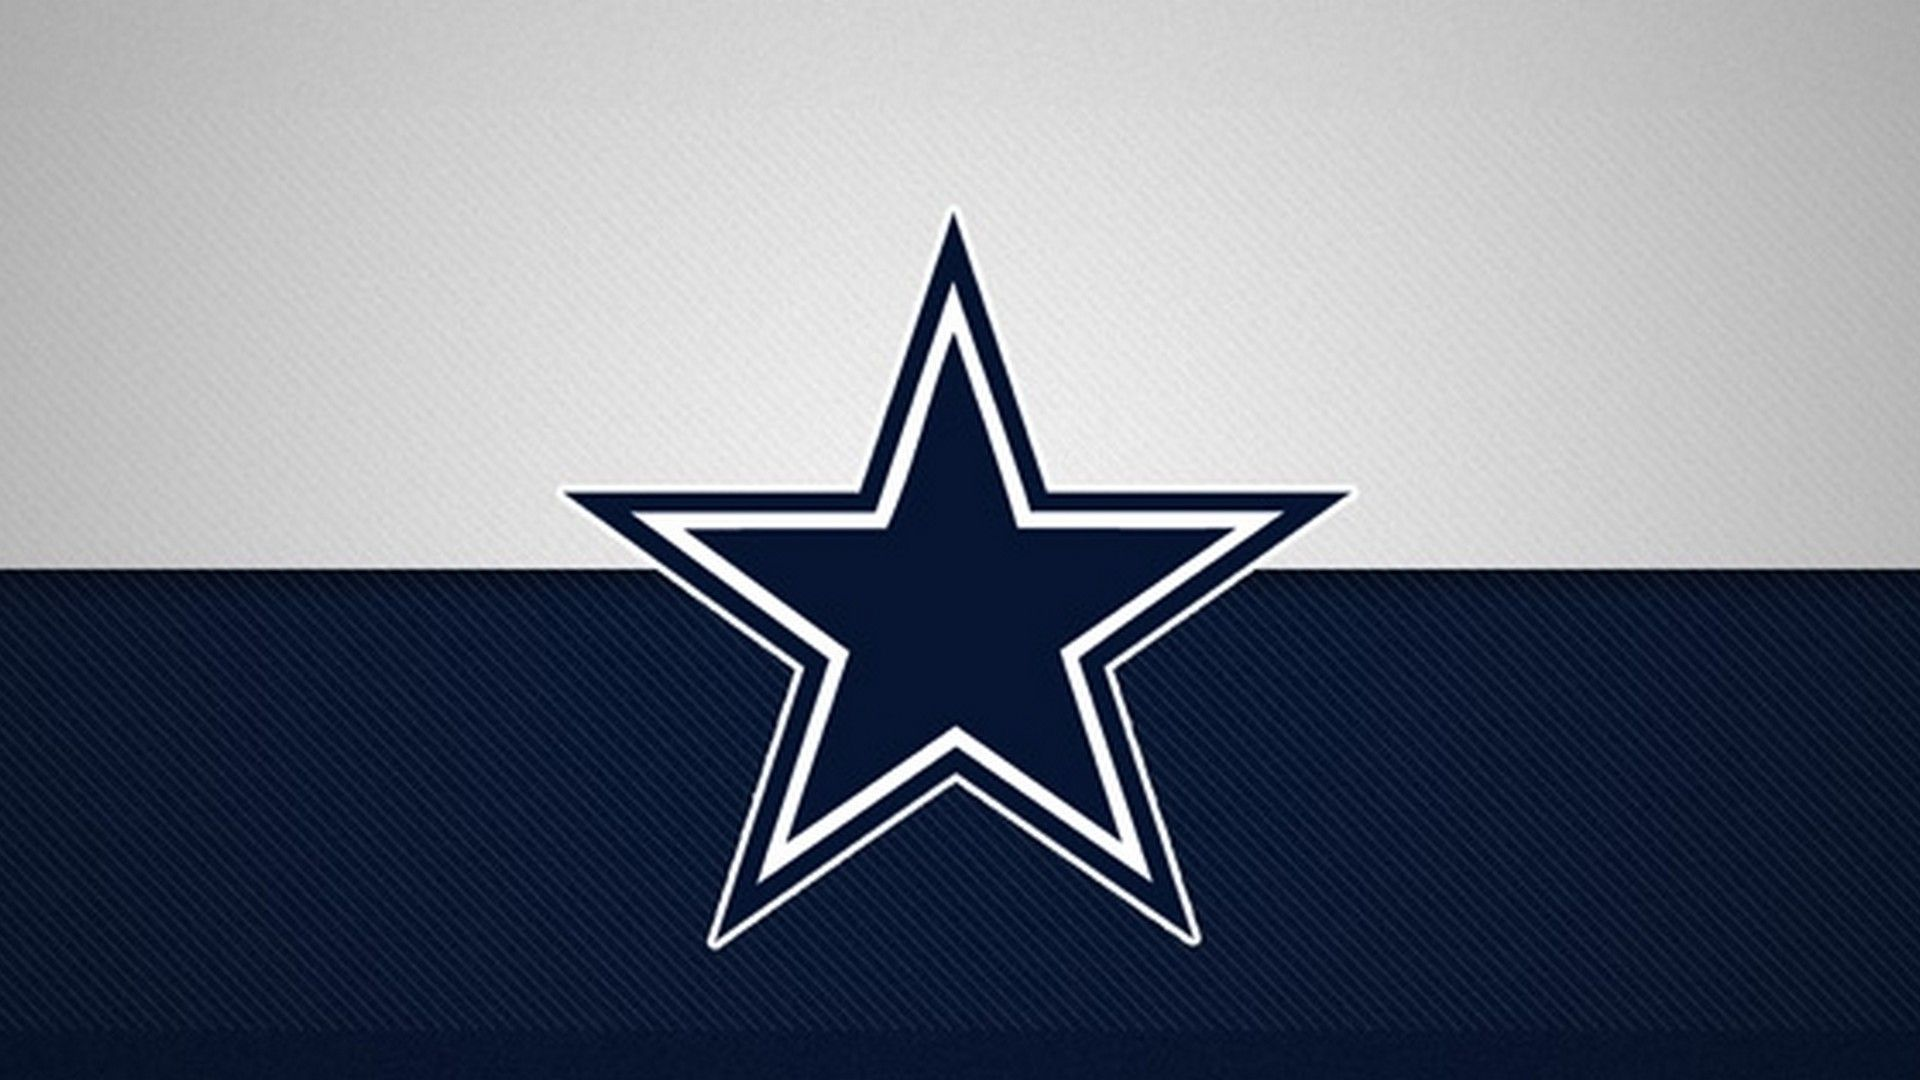 Wallpaper Desktop Dallas Cowboys HD Dallas cowboys